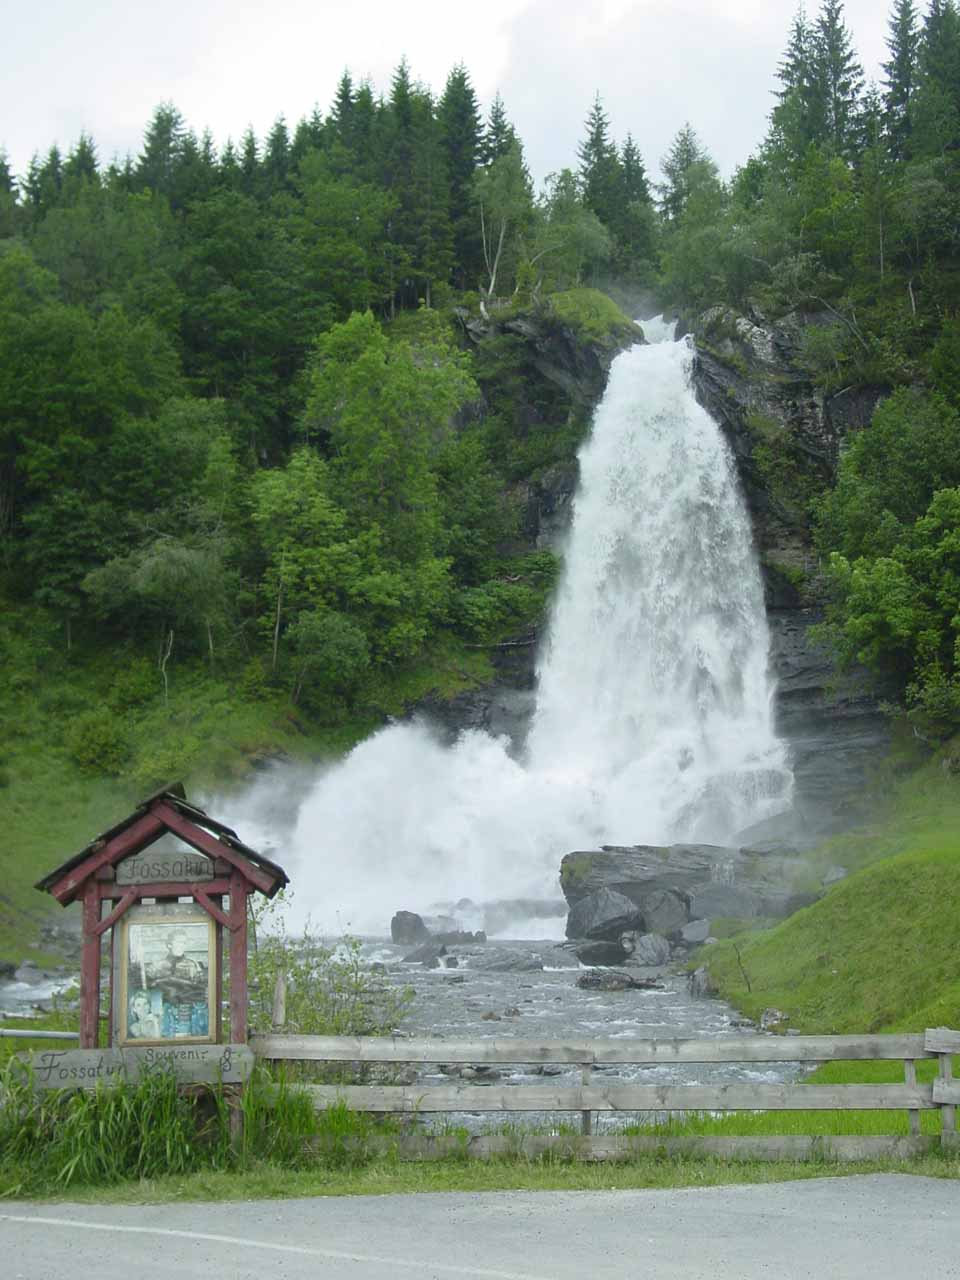 This was one of our last looks at Steinsdalsfossen as we were about to head back to the E16 along the Mv7